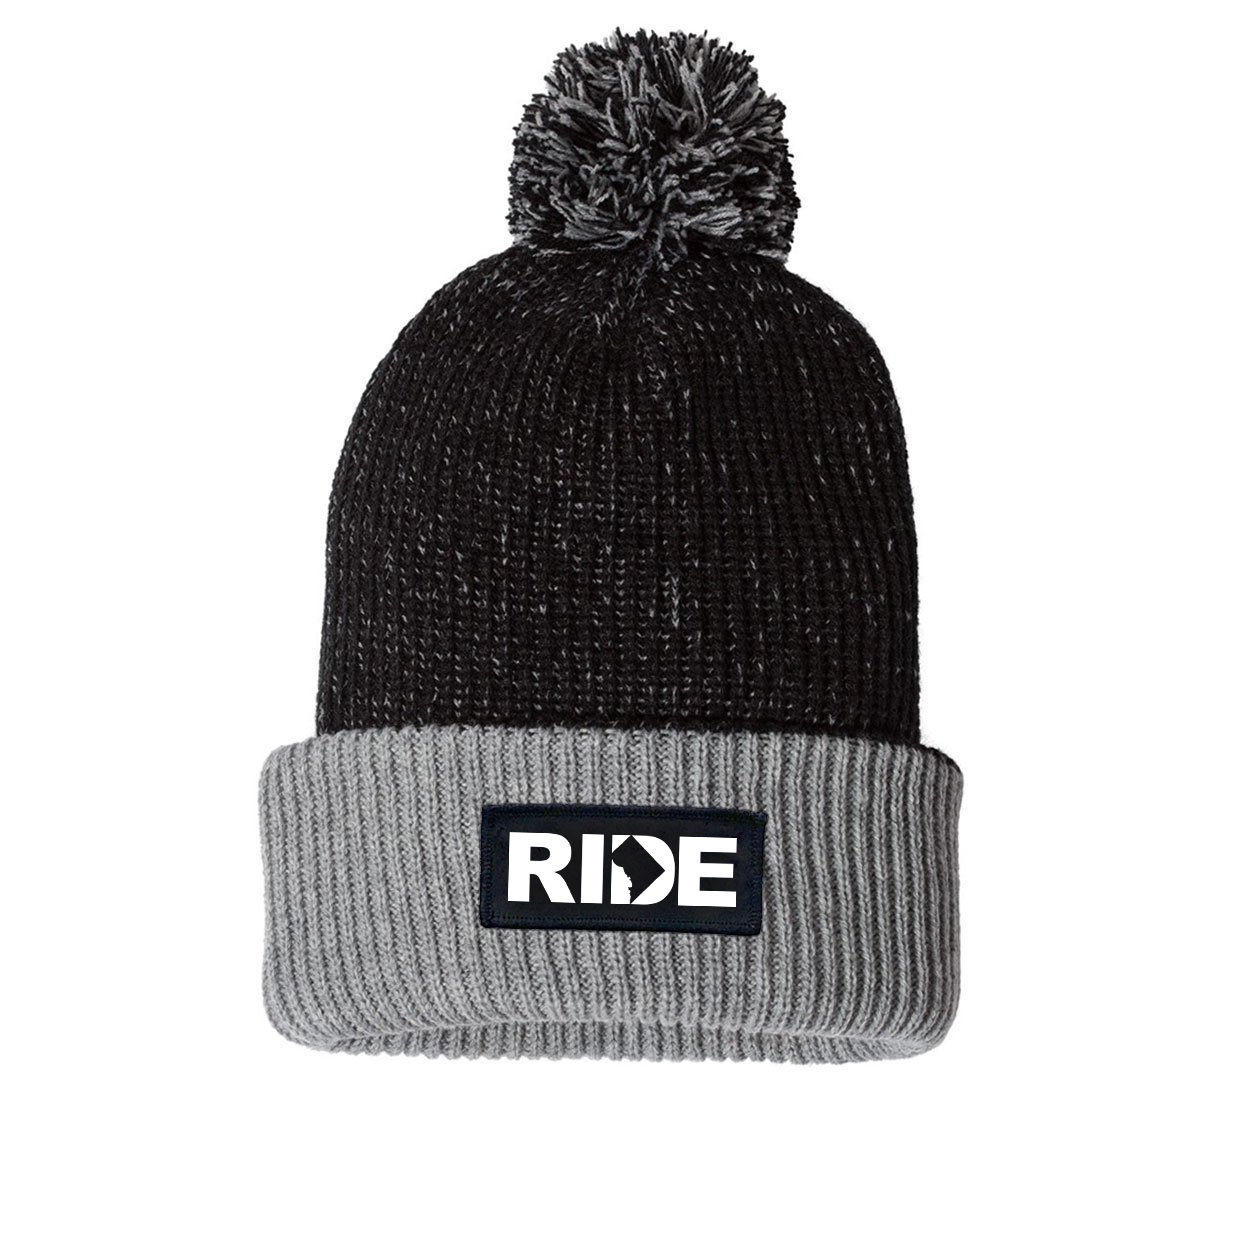 Ride District of Columbia Night Out Woven Patch Roll Up Pom Knit Beanie Black/Gray (White Logo)